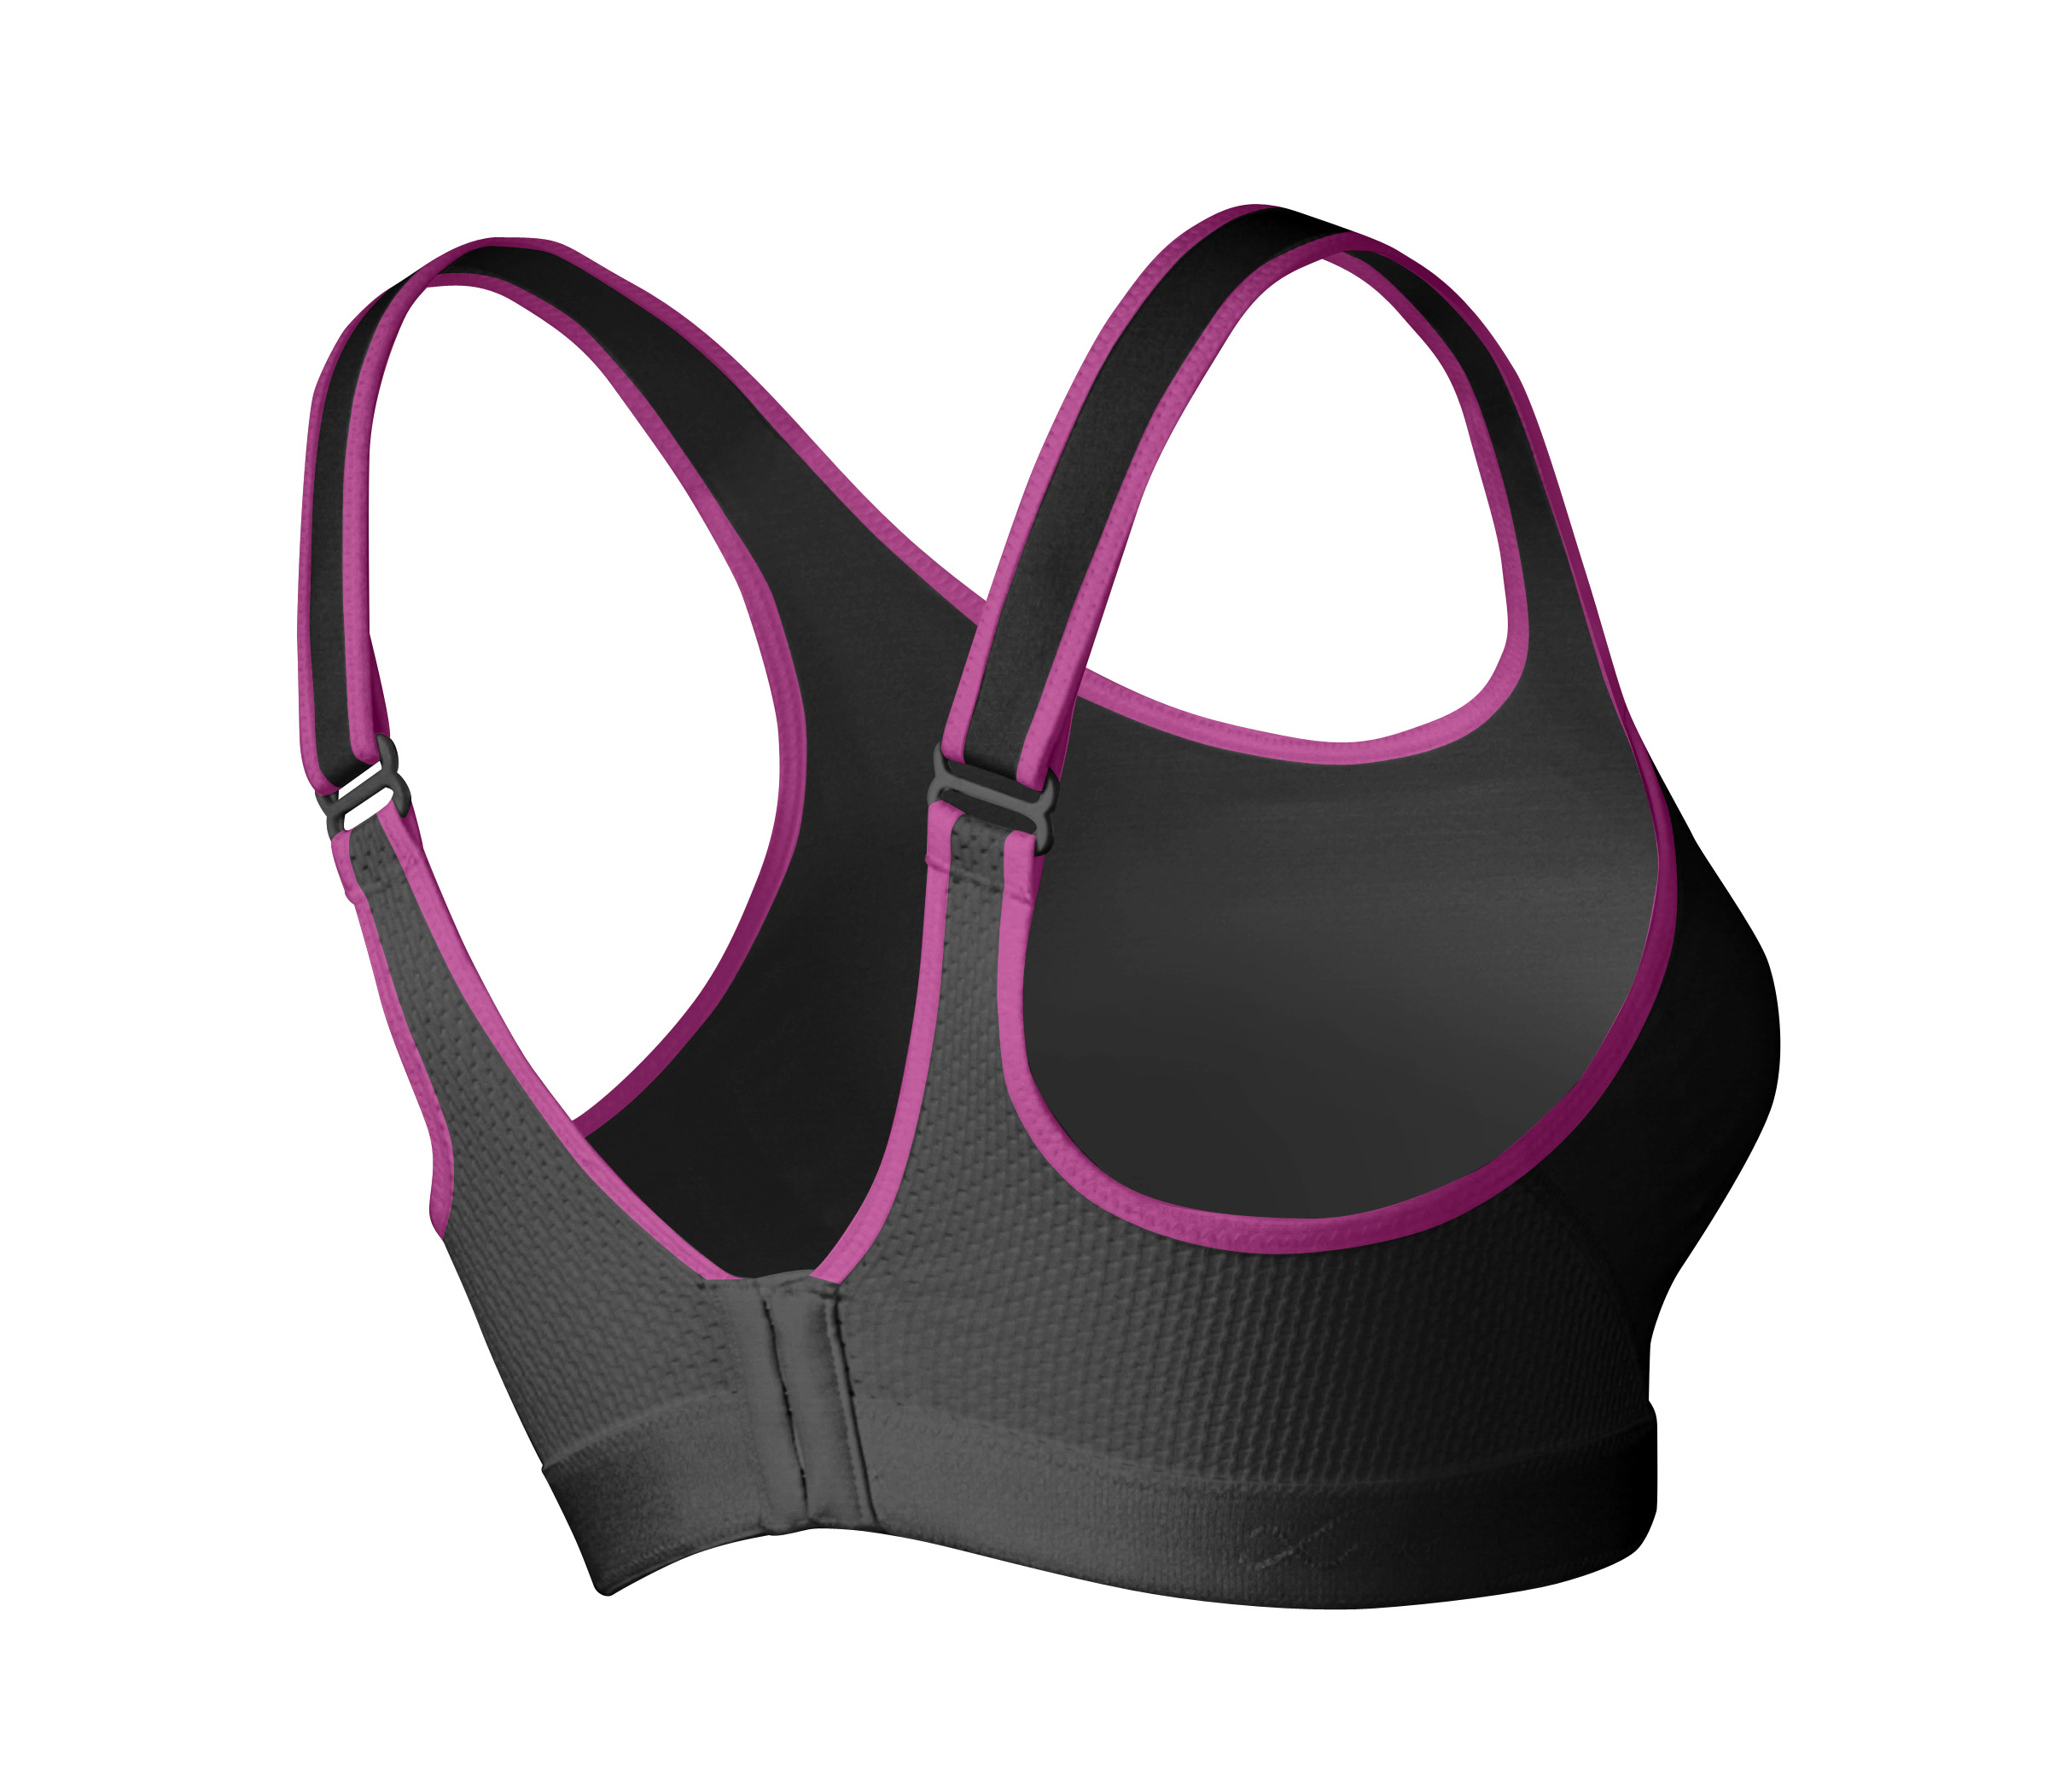 Versatex Support Bra - It's not for blokes